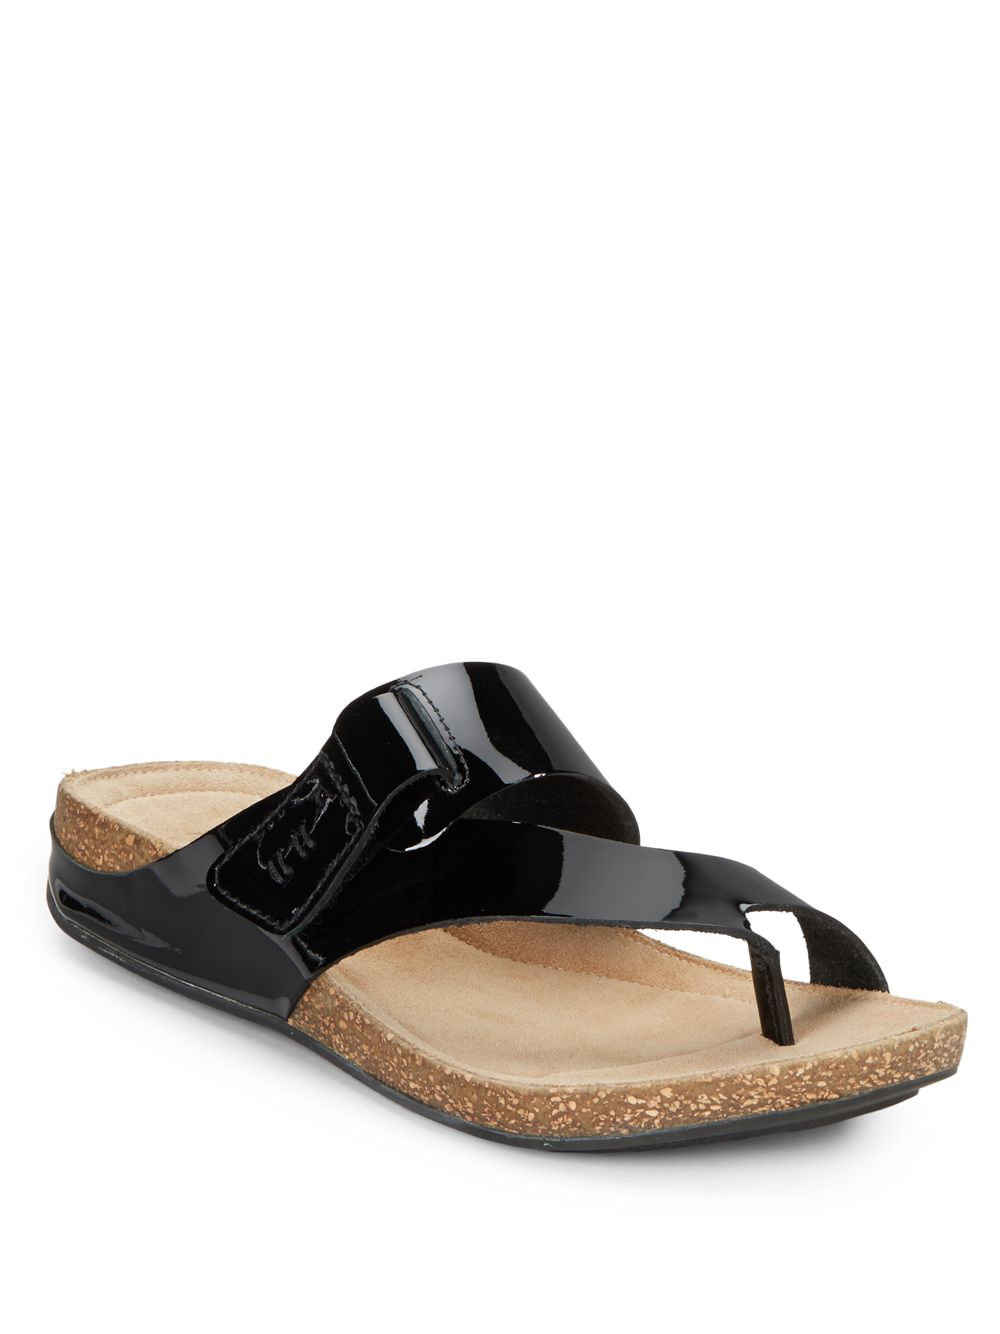 4709e2684 Lyst - Clarks Perri Coast Patent Leather Sandals in Black